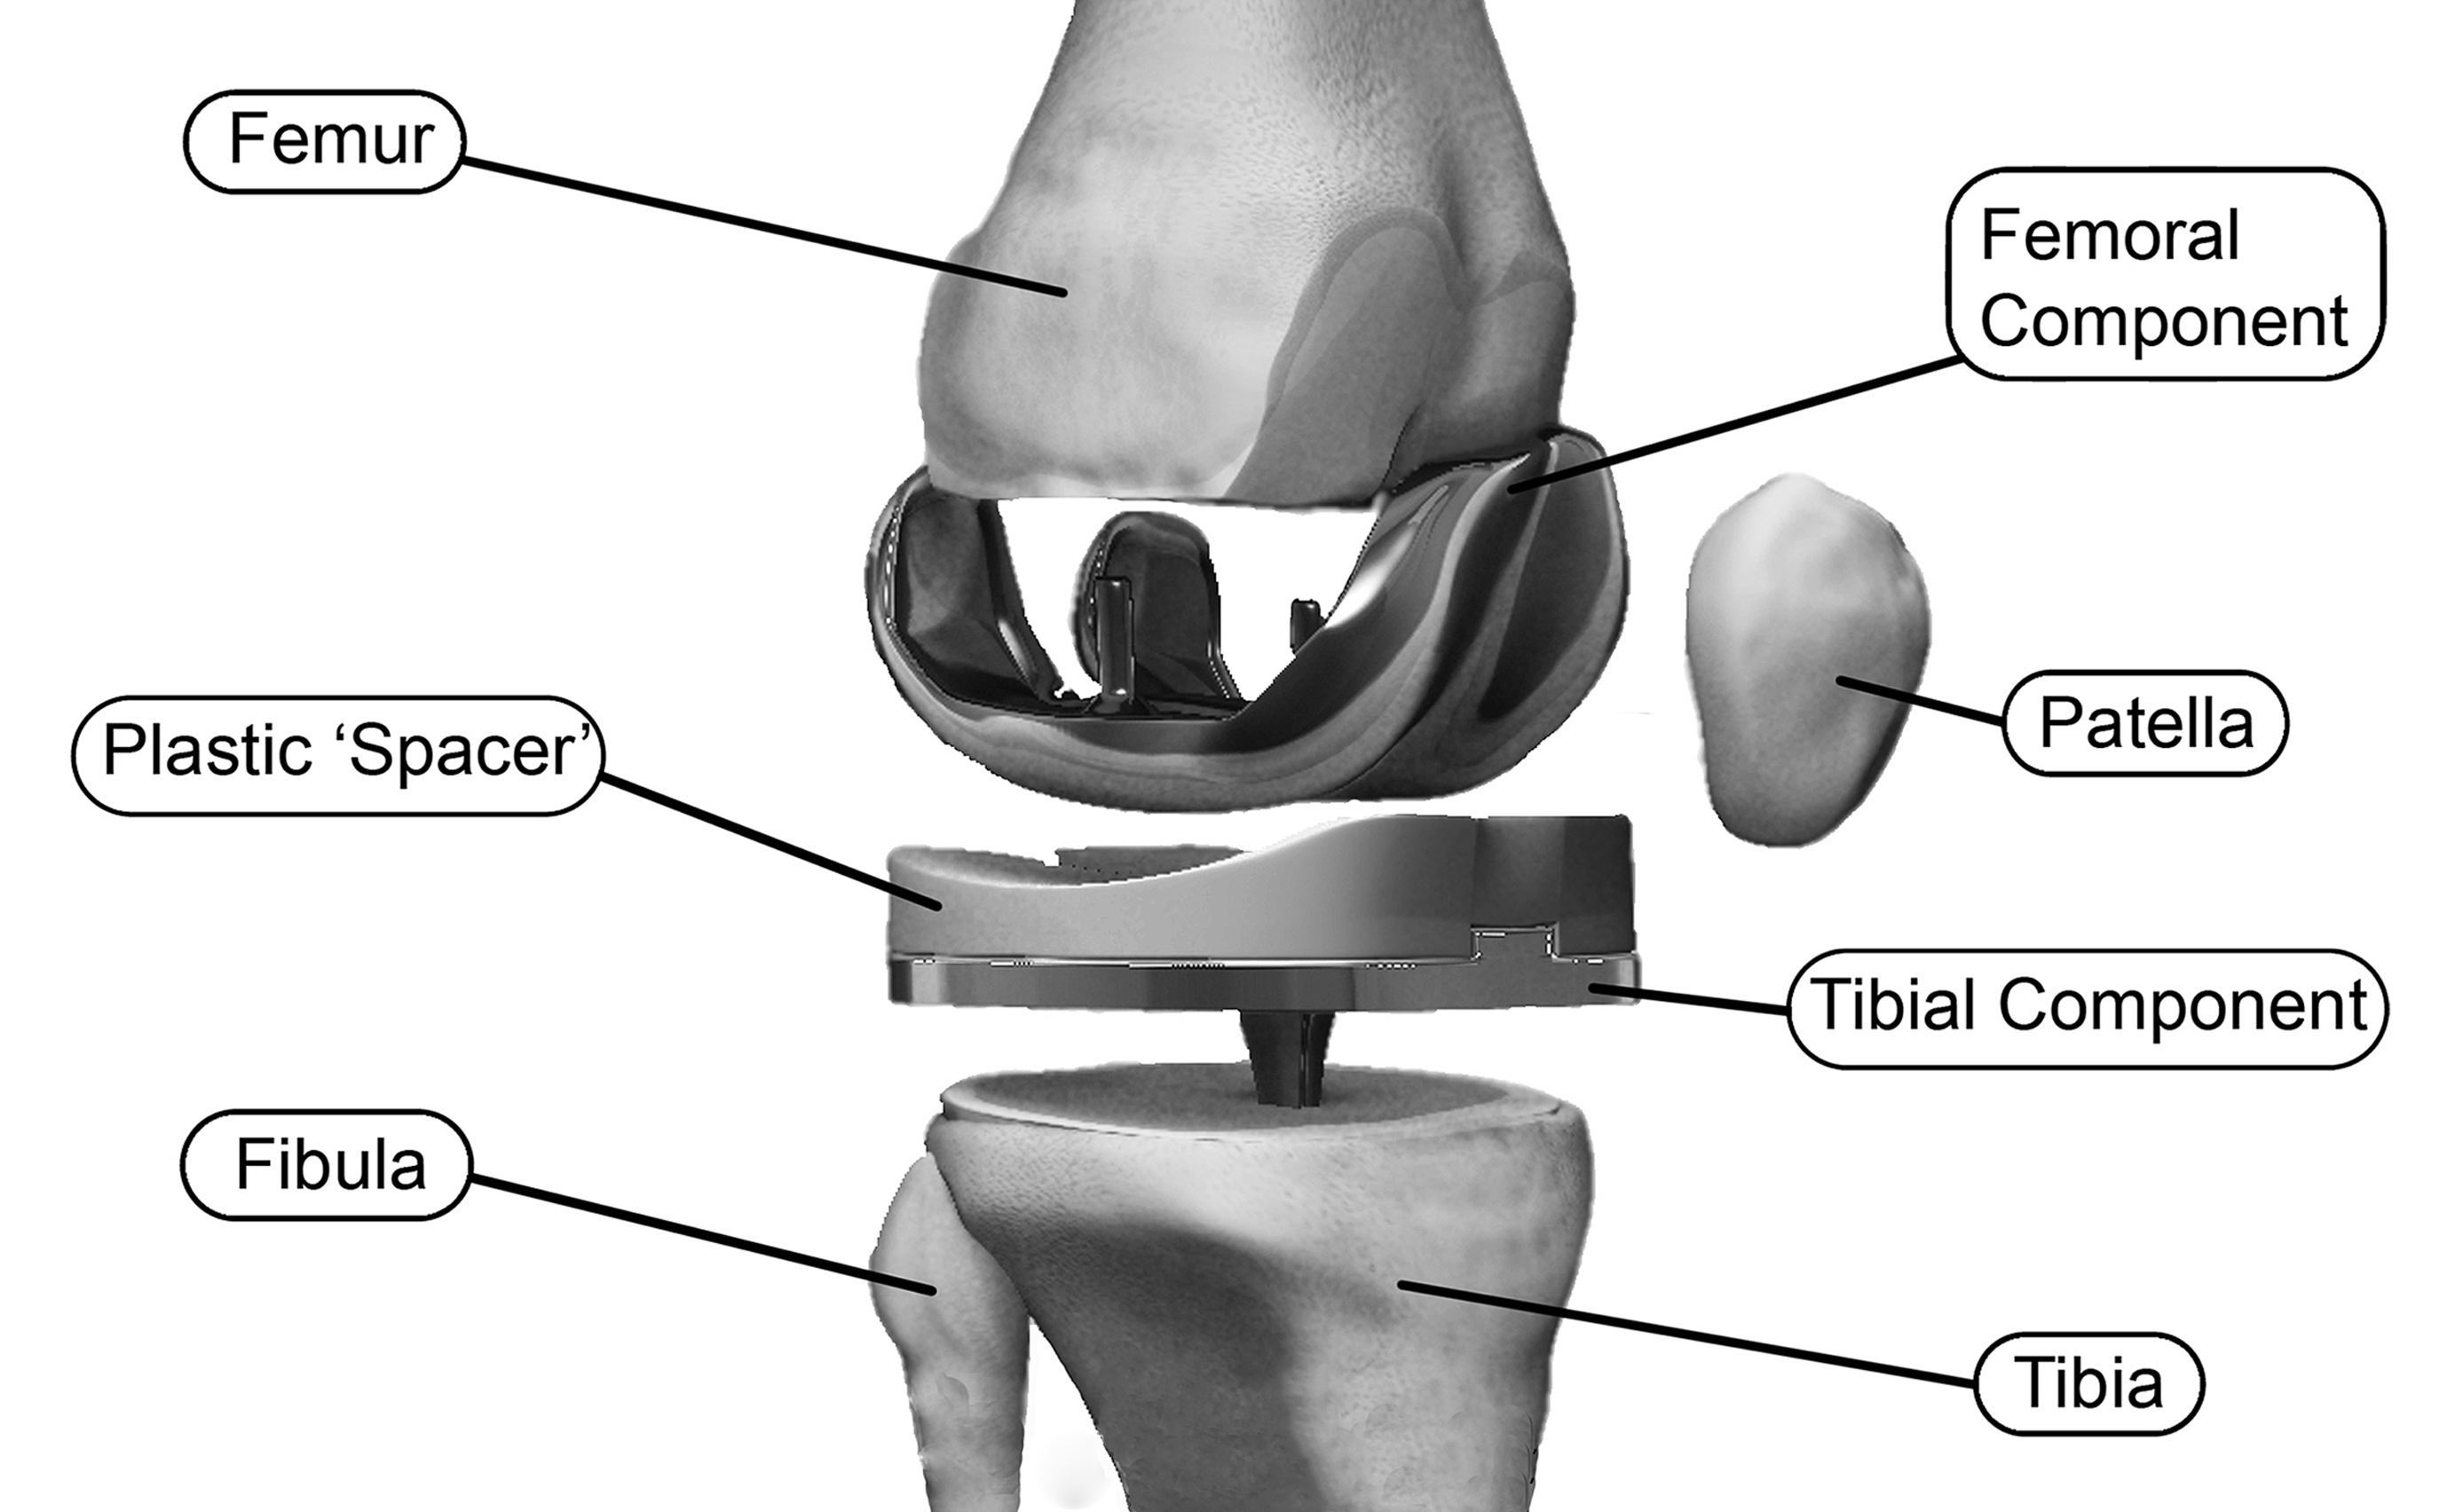 Expanded Blow-up of Knee Implant in Place